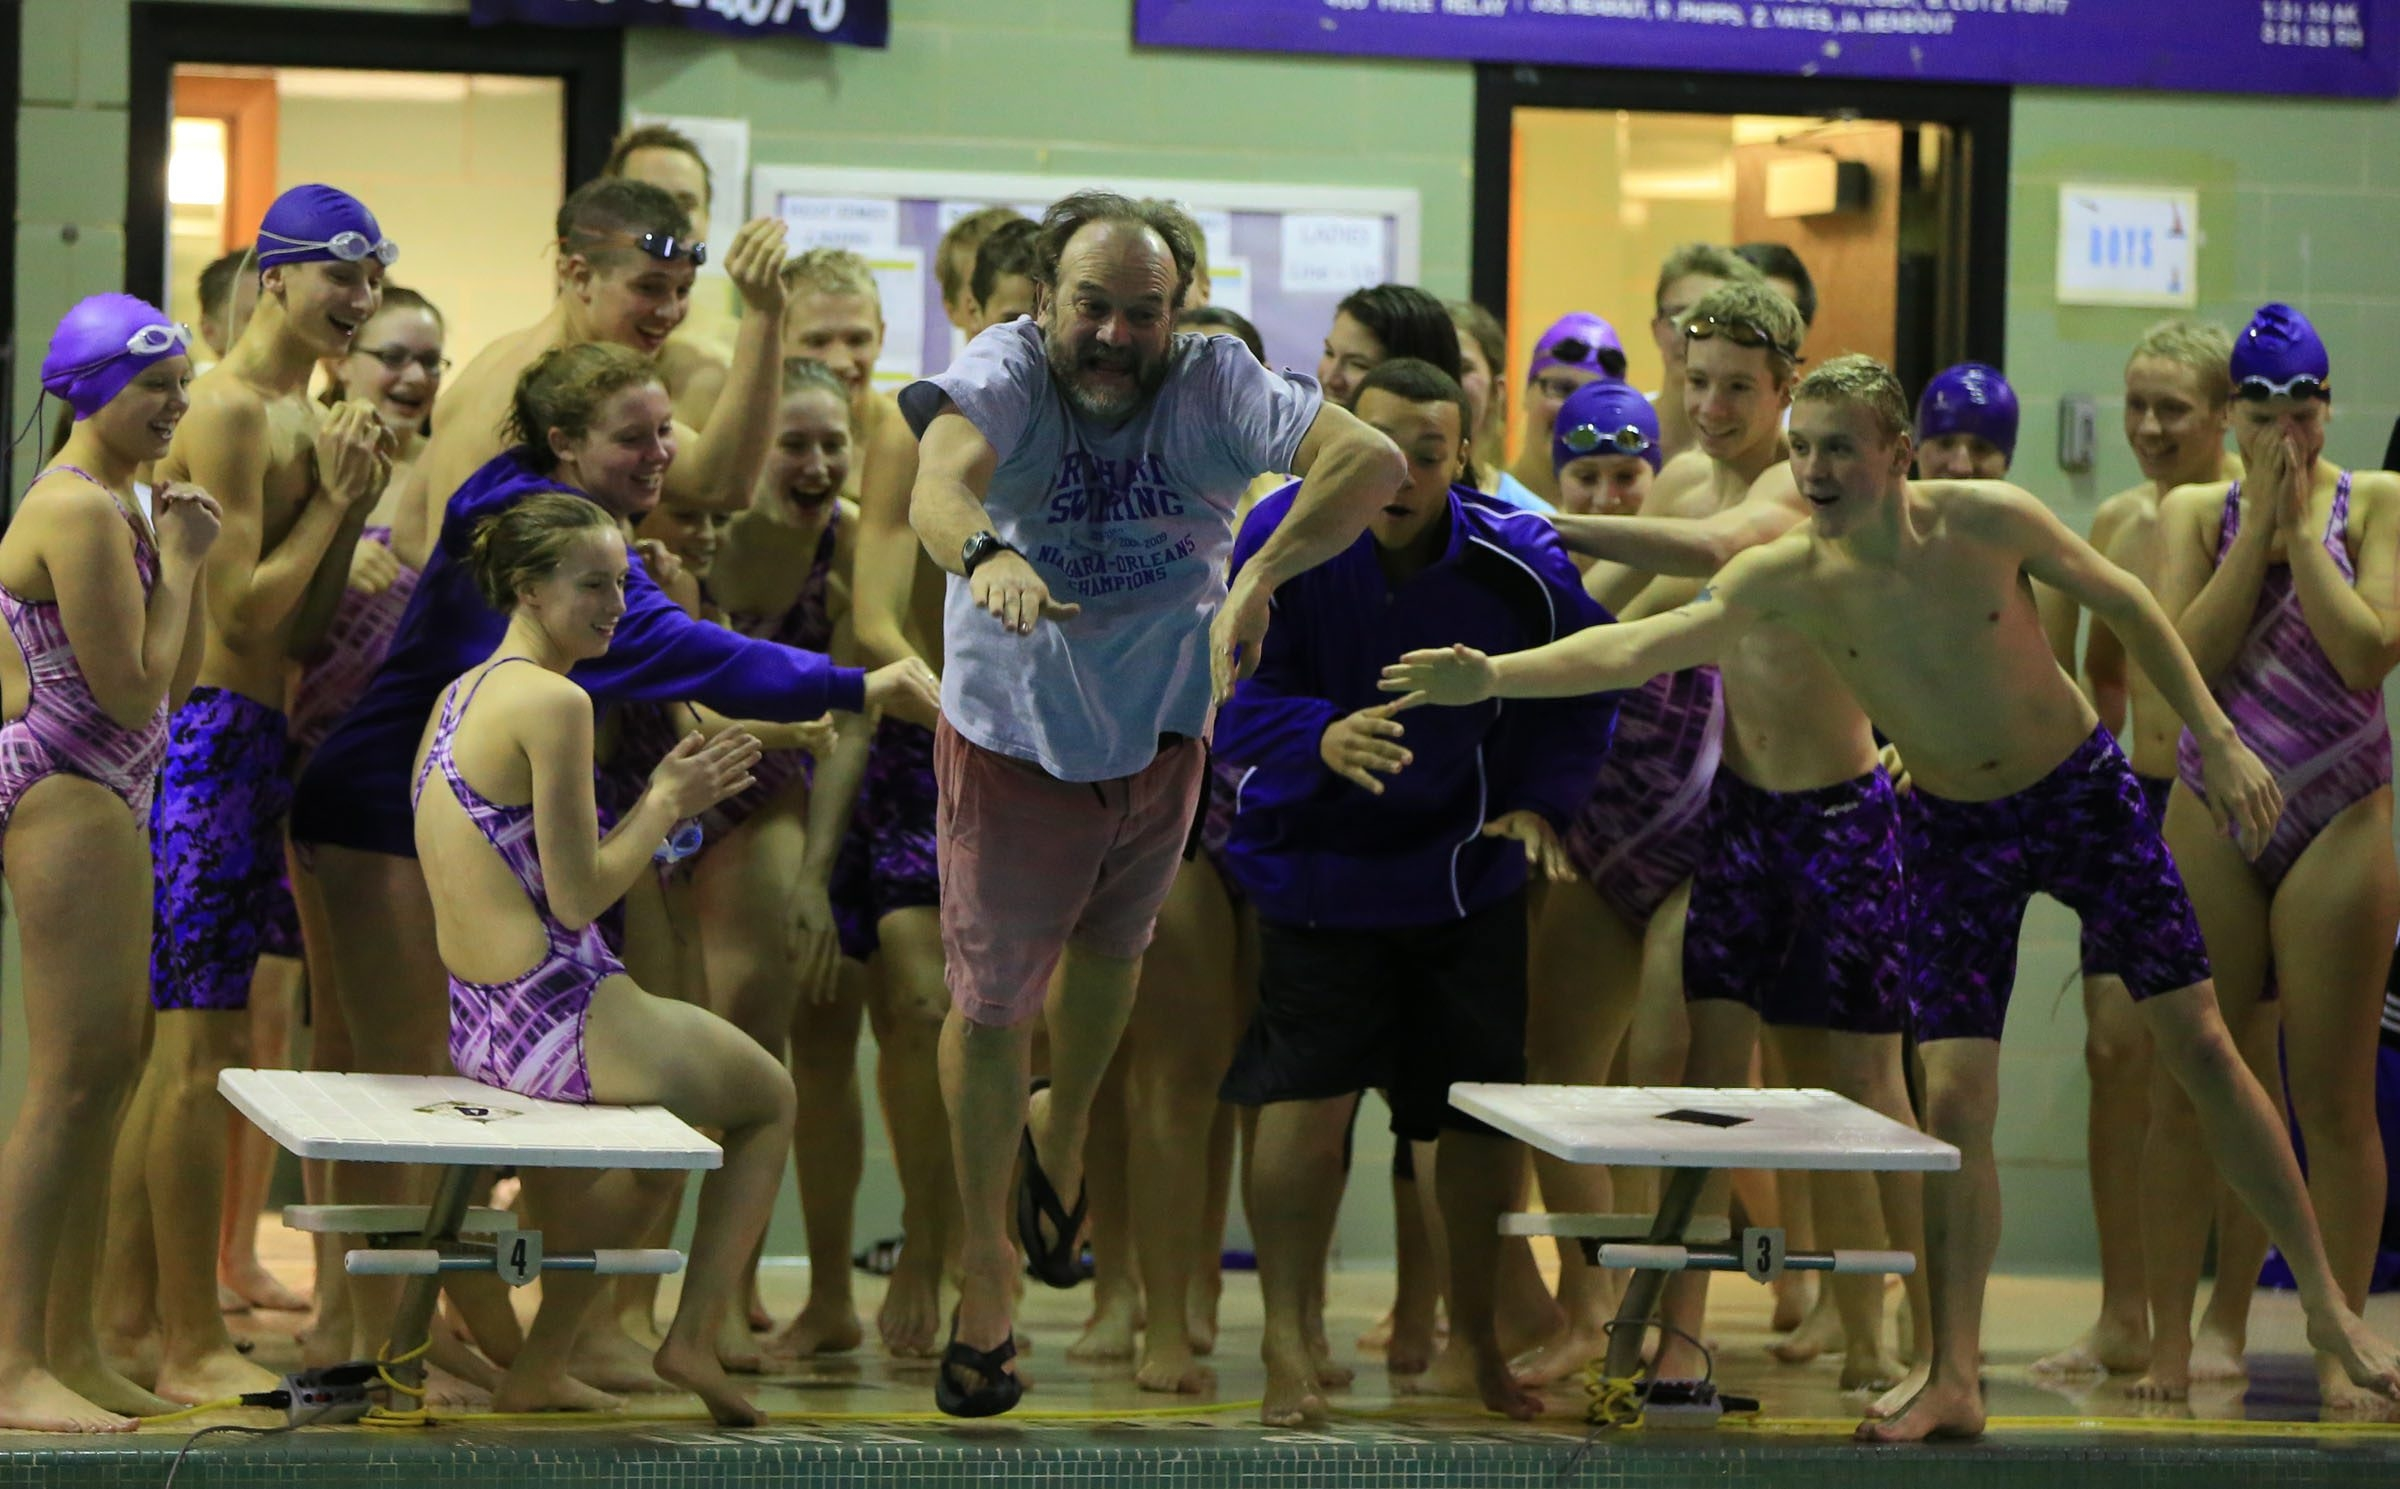 Roy-Hart swimming coach Bruce Matthews heads for the pool after his boys team defeated Akron, 100-51, for its 125th straight dual meet victory and ninth straight Niagara-Orleans League championship.